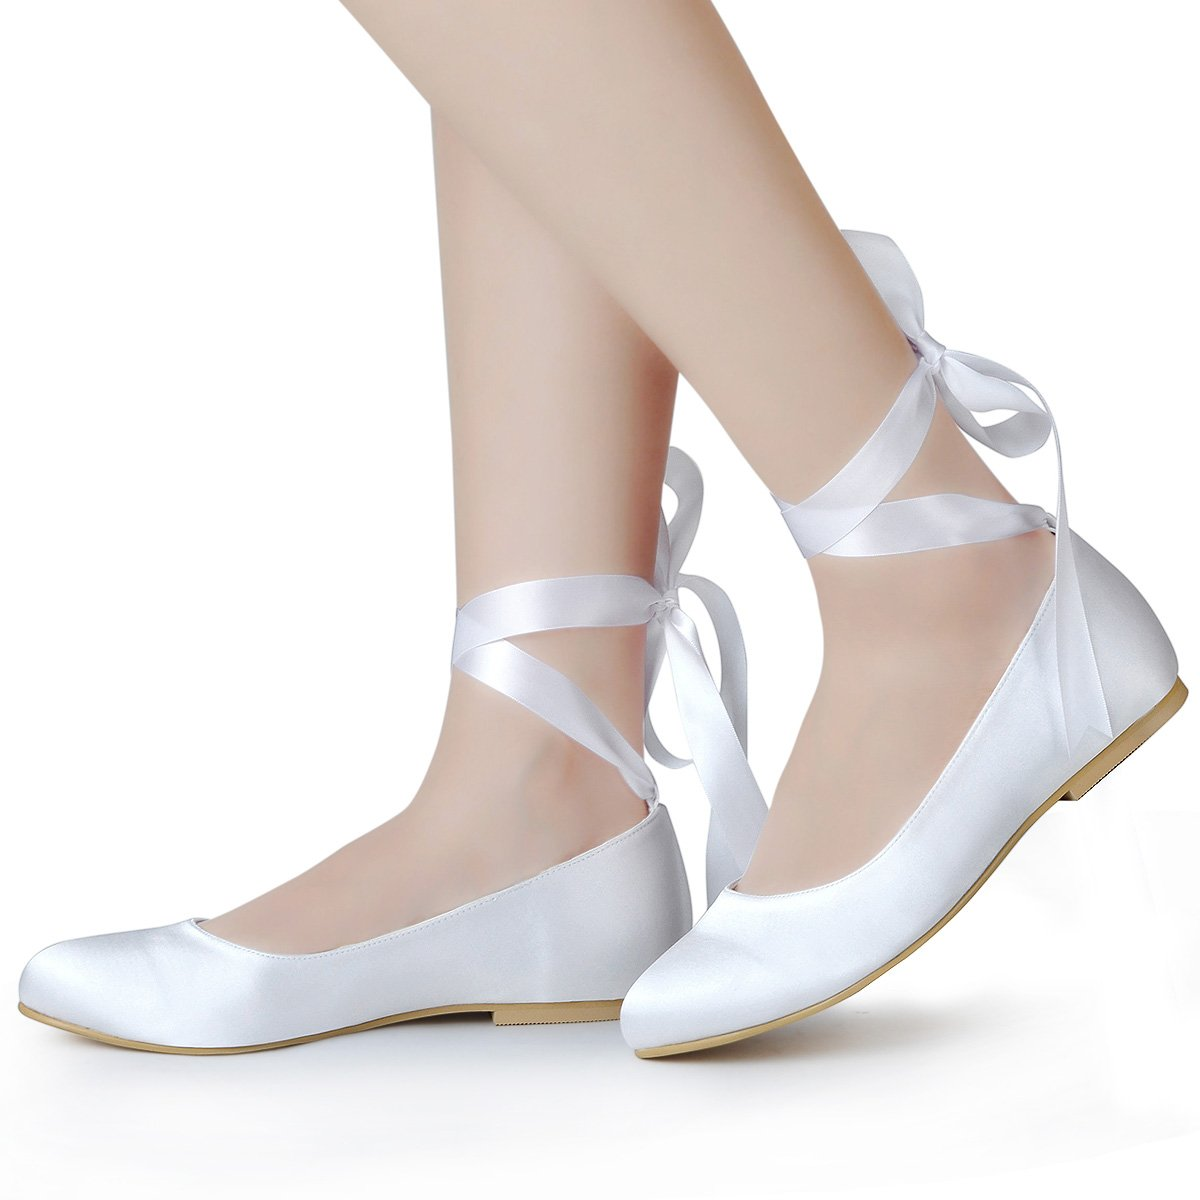 1950s Style Shoes | Heels, Flats, Saddle Shoes ElegantPark Women Comfort Flats Closed Toe Ribbon Tie Satin Wedding Bridal Shoes $42.95 AT vintagedancer.com